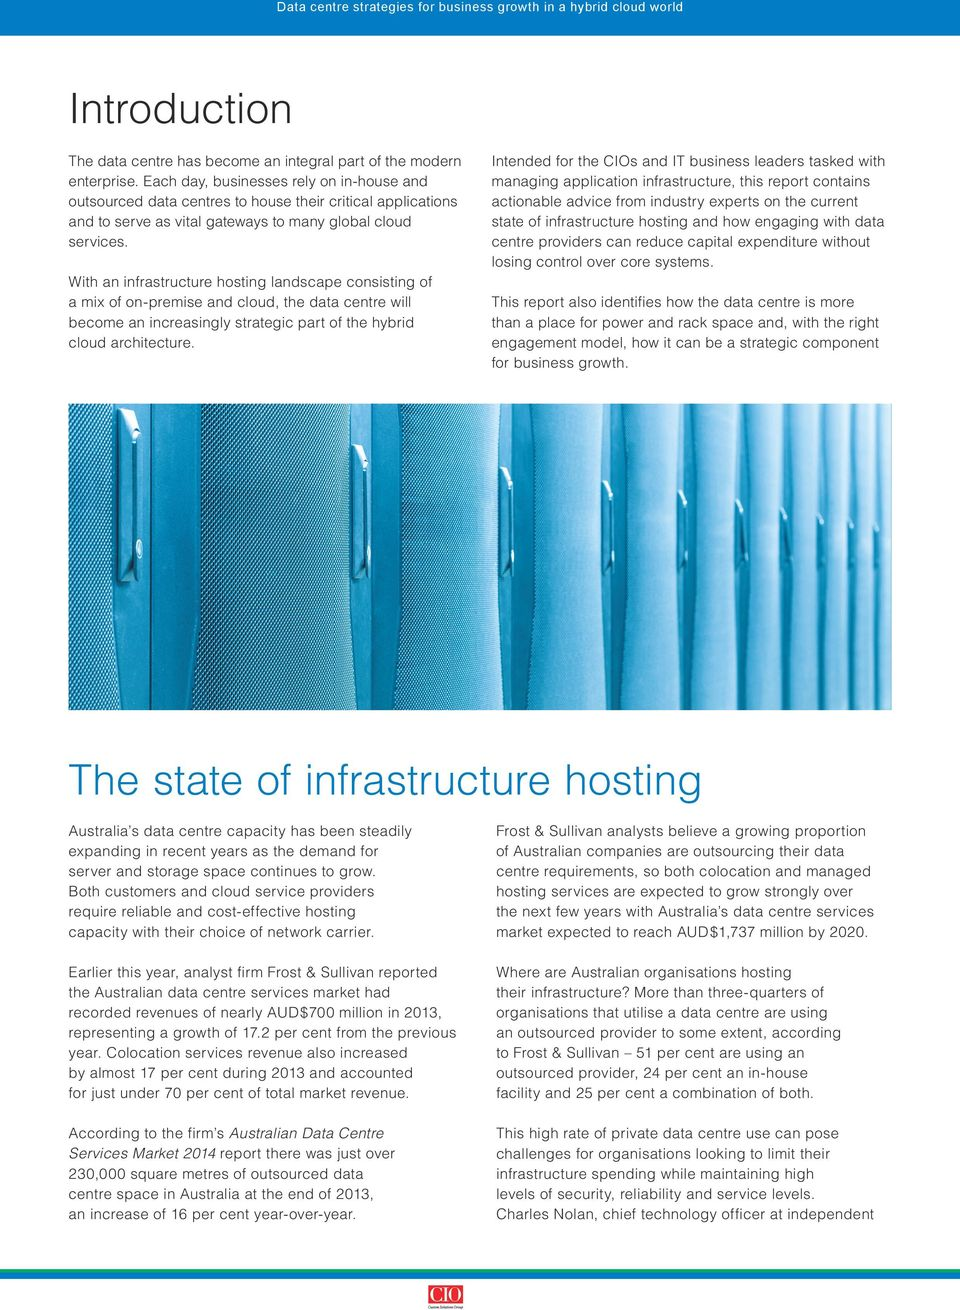 With an infrastructure hosting landscape consisting of a mix of on-premise and cloud, the data centre will become an increasingly strategic part of the hybrid cloud architecture.